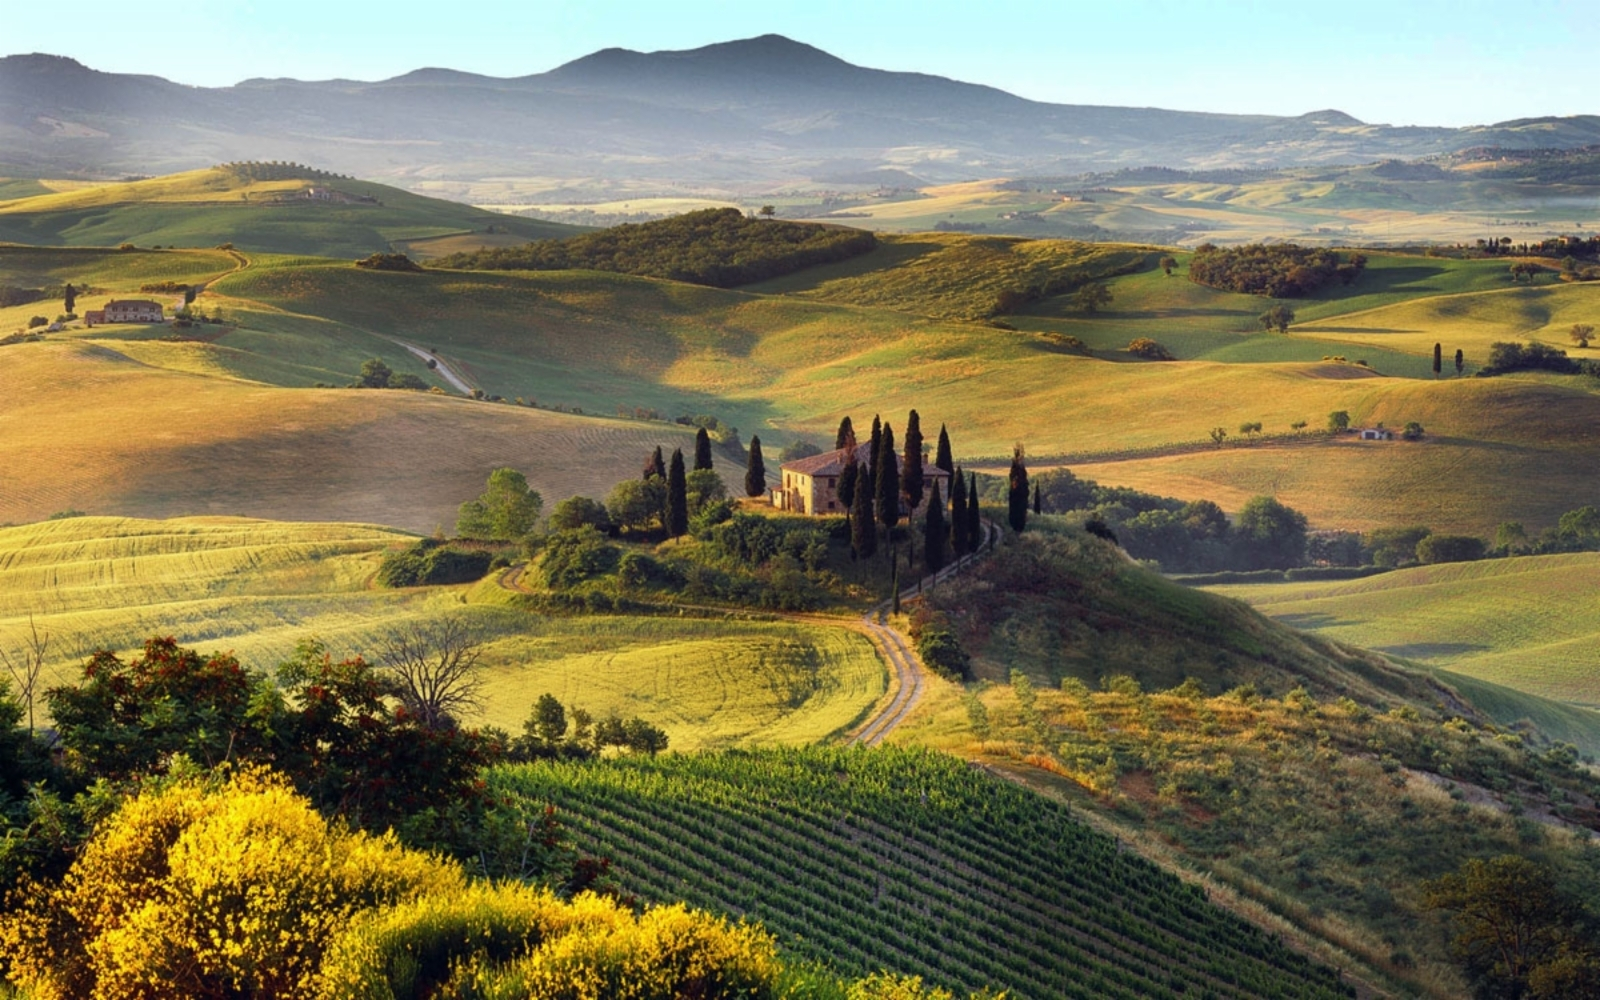 Tuscany travel guide for first-time visitors - Best Places to Visit in Europe - planningforeurope.com (1)